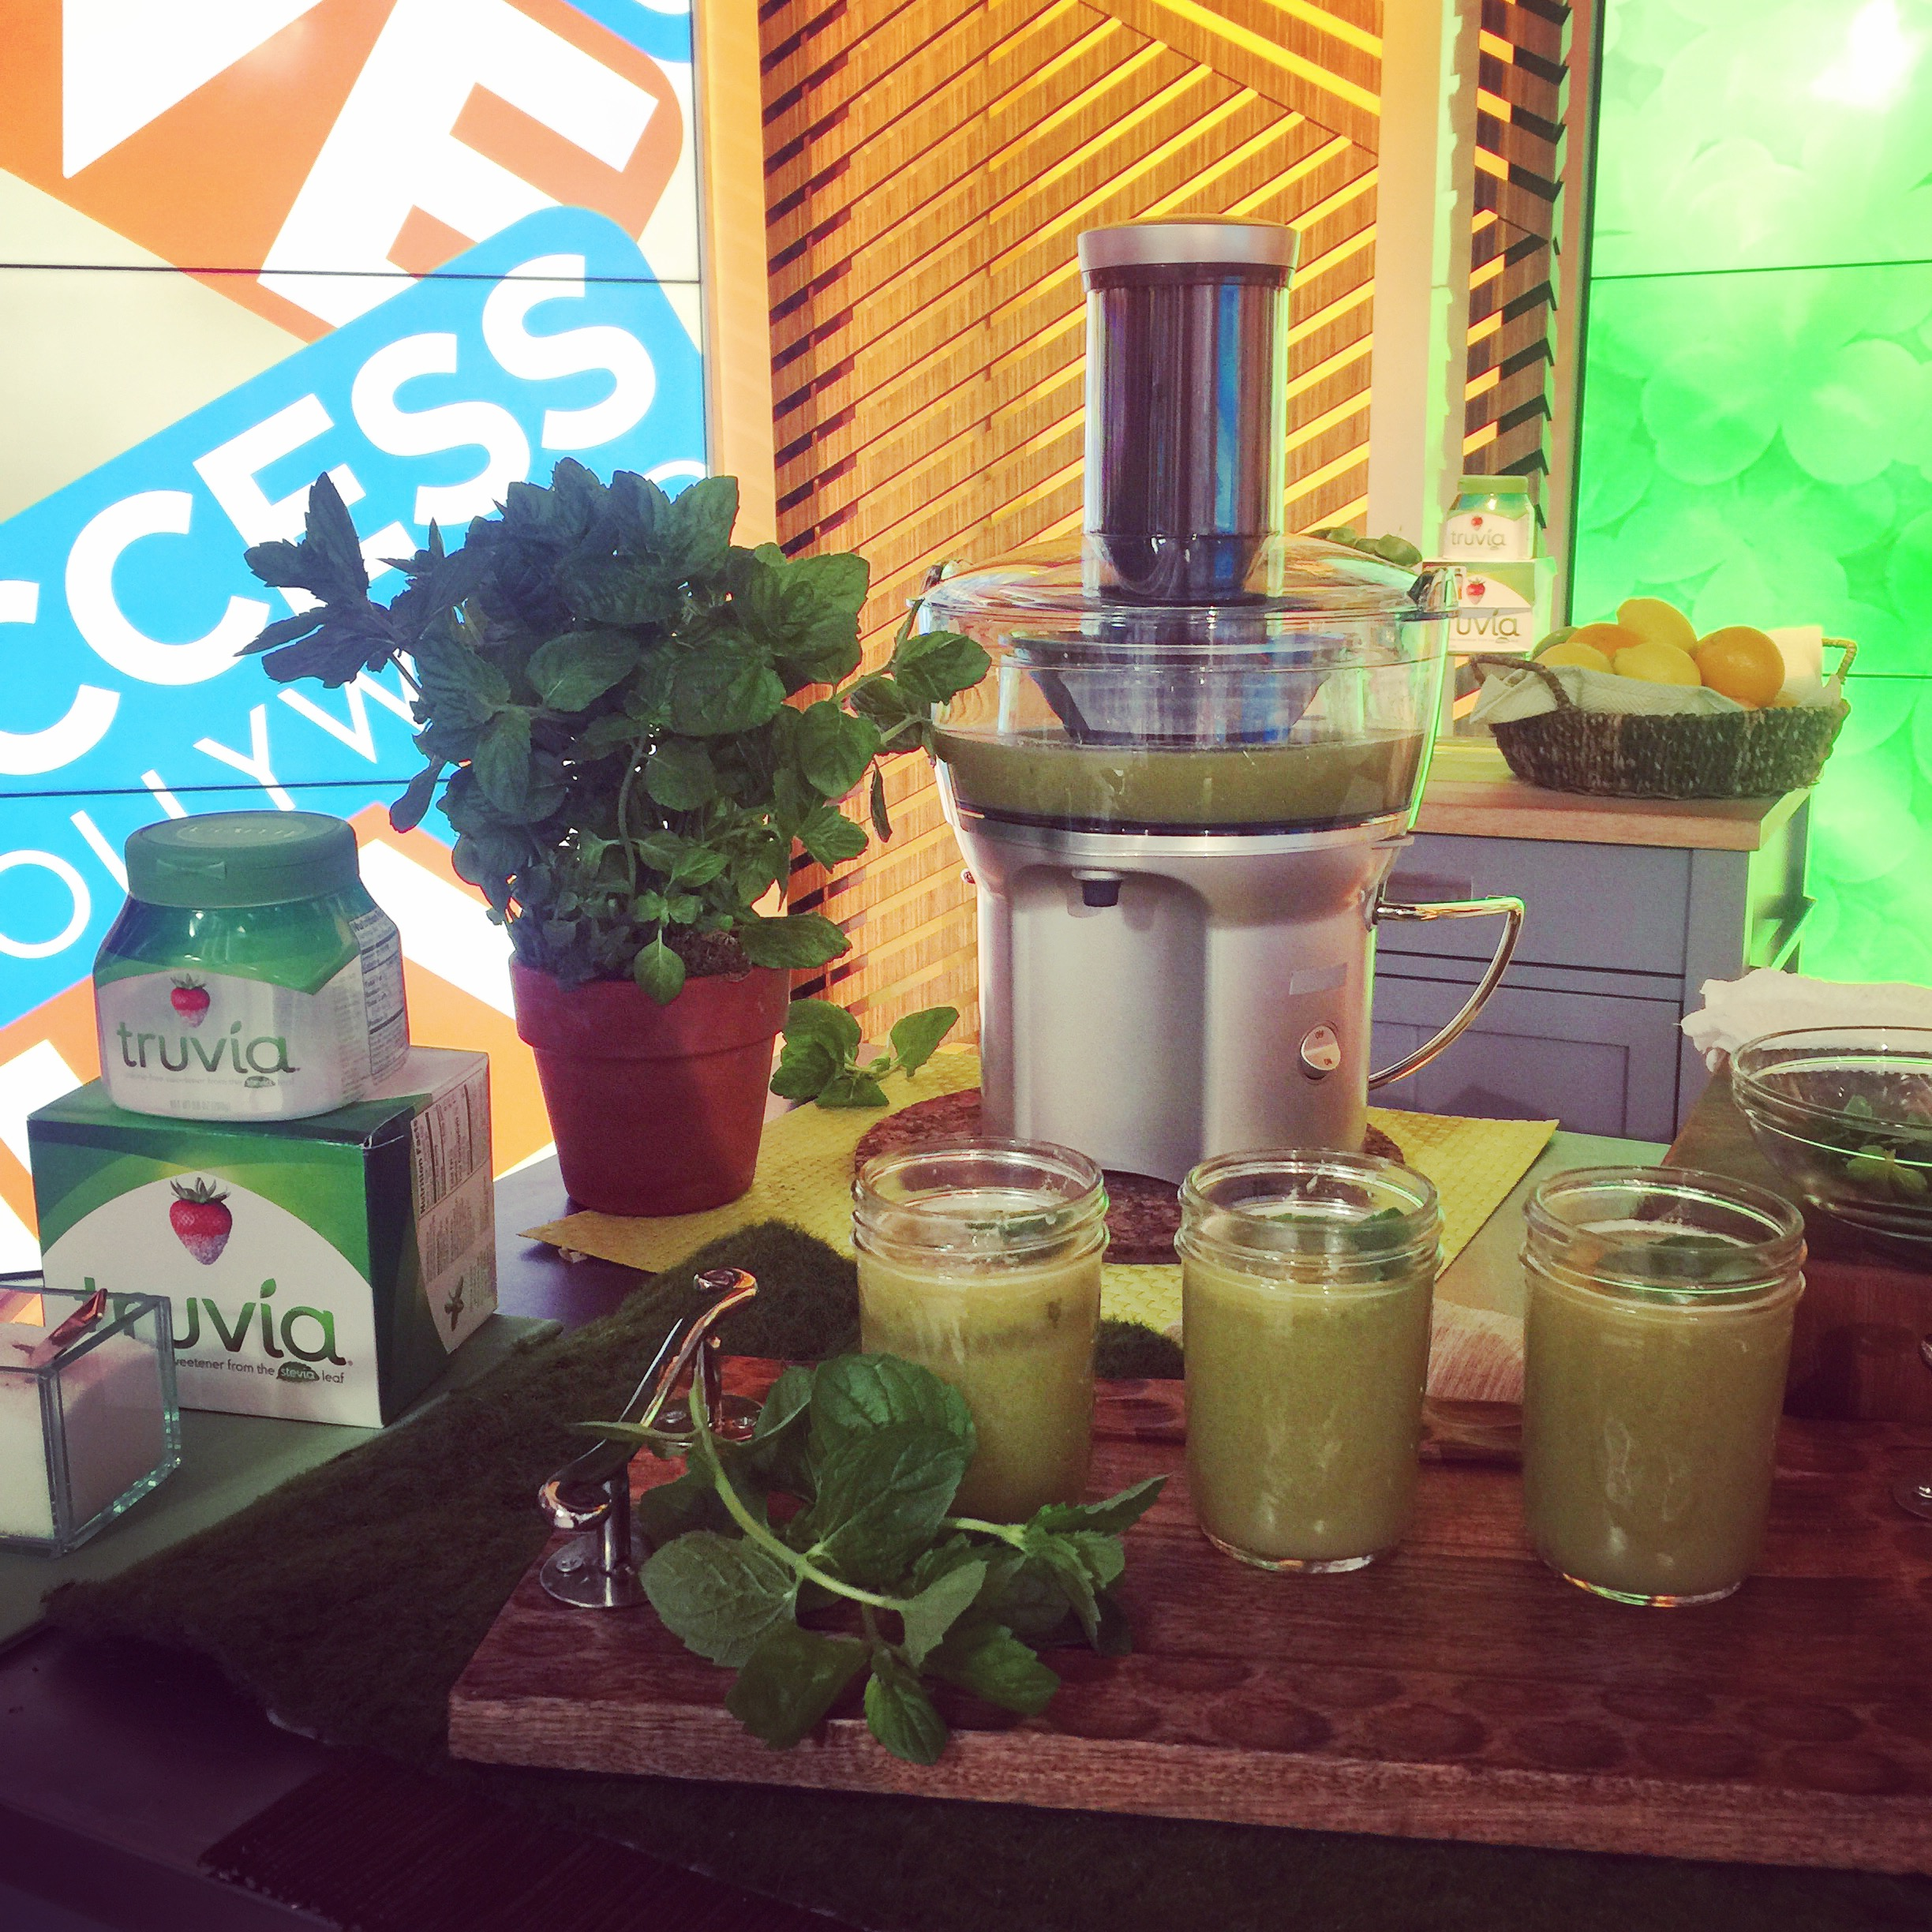 Drink-Me-I'm-Irish-Must-Try-Reduced-Sugar-St.-Patrick's-Day-Drink-Recipes-From-Truvia